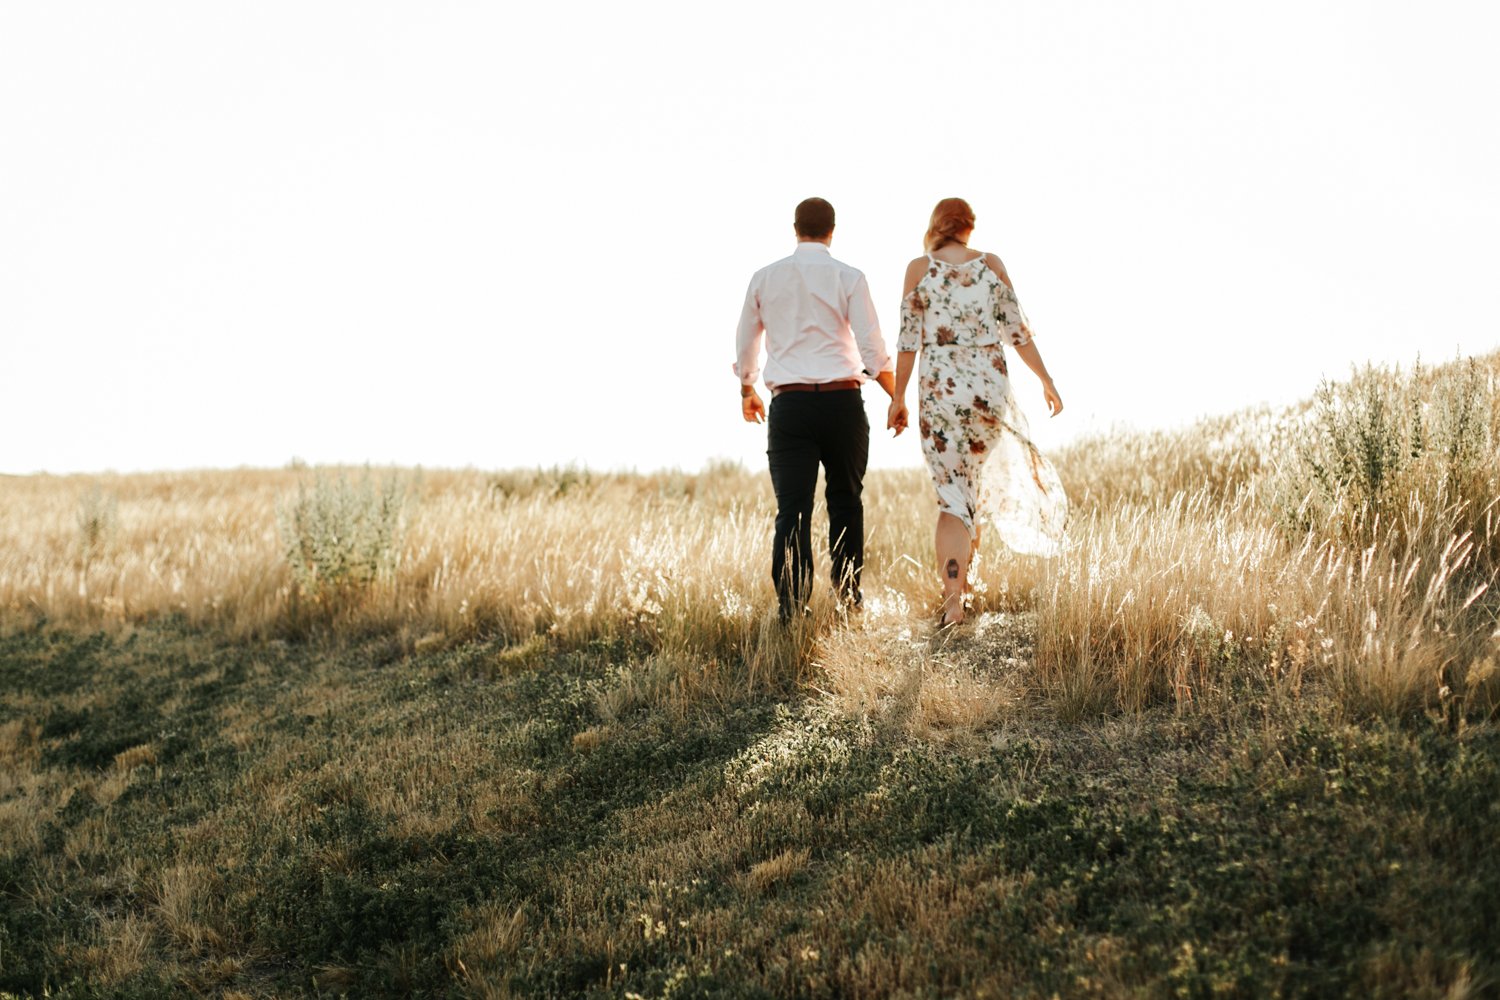 lethbridge-wedding-photographer-love-and-be-loved-photography-katie-kelli-engagement-picture-image-photo-2.jpg